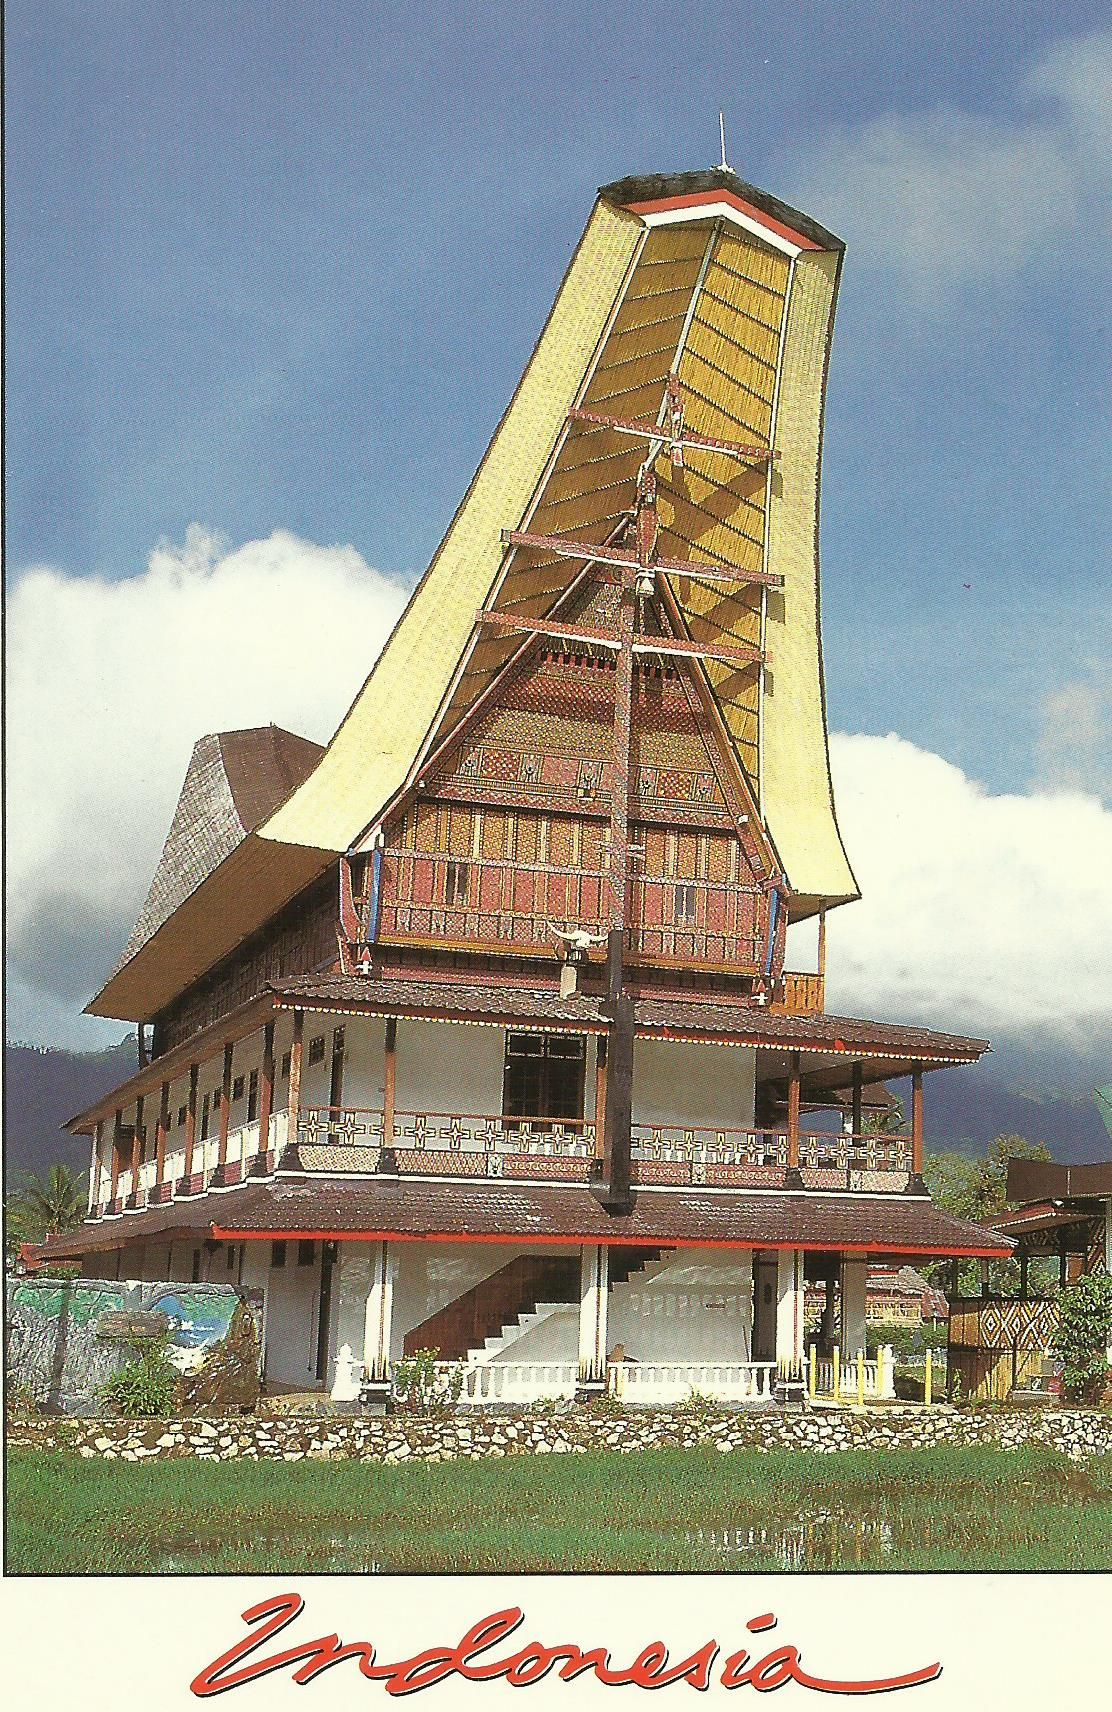 indonesia: a hotel in toraja retains the traditional design of